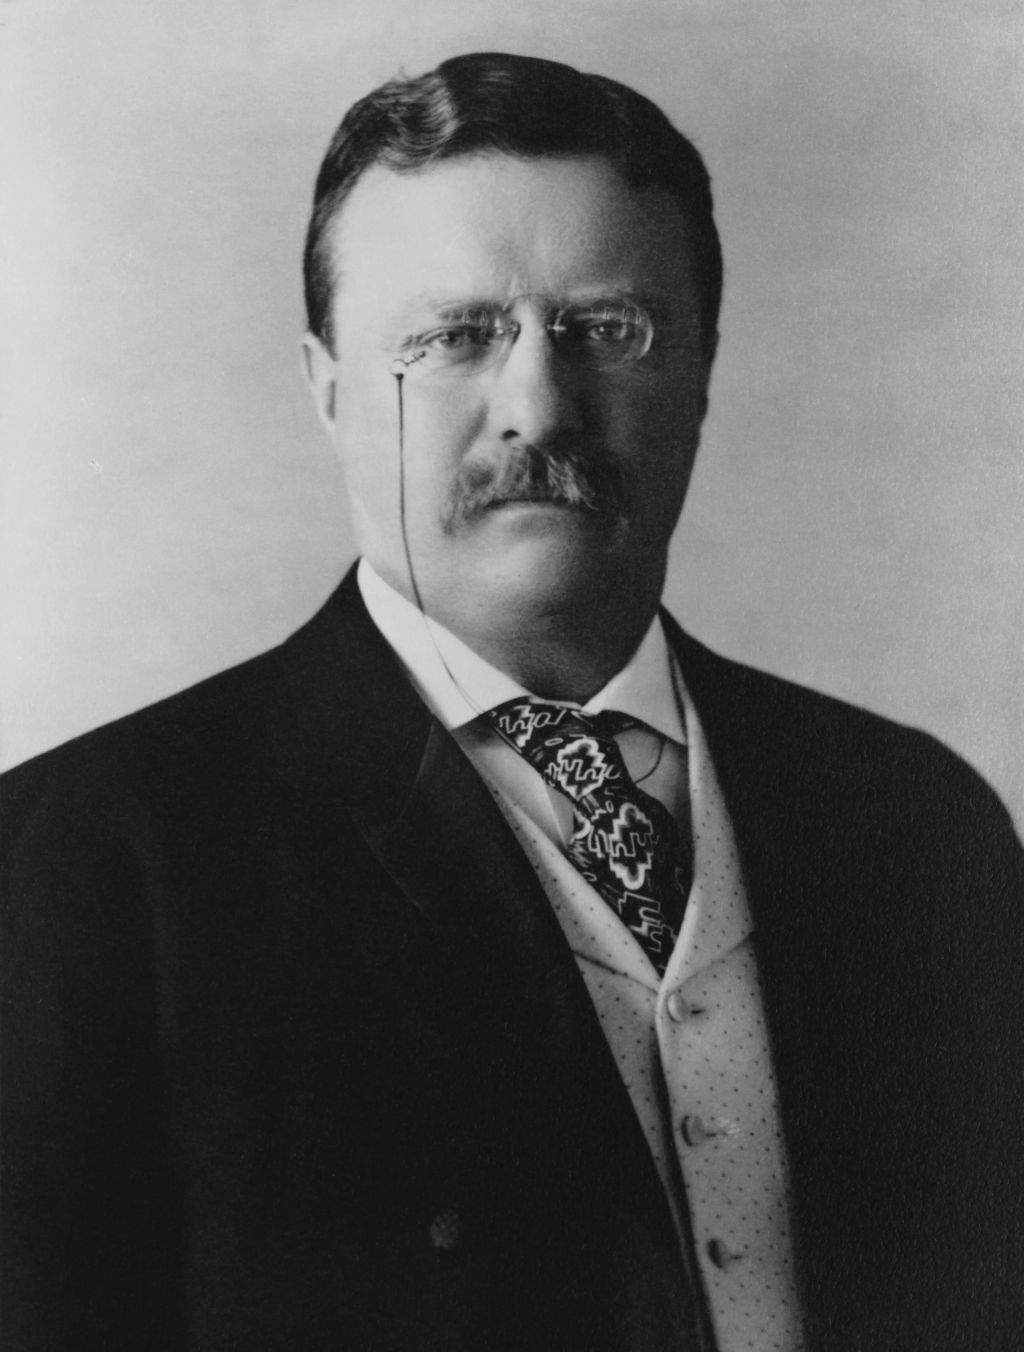 Macbeth Essay Thesis President Of The United States Theodore Roosevelt Headandshoulders  Portrait Facing Essay On Health Promotion also English Class Essay Theodore Roosevelt This Essay Is About The Life Of Theodore  Sample Proposal Essay